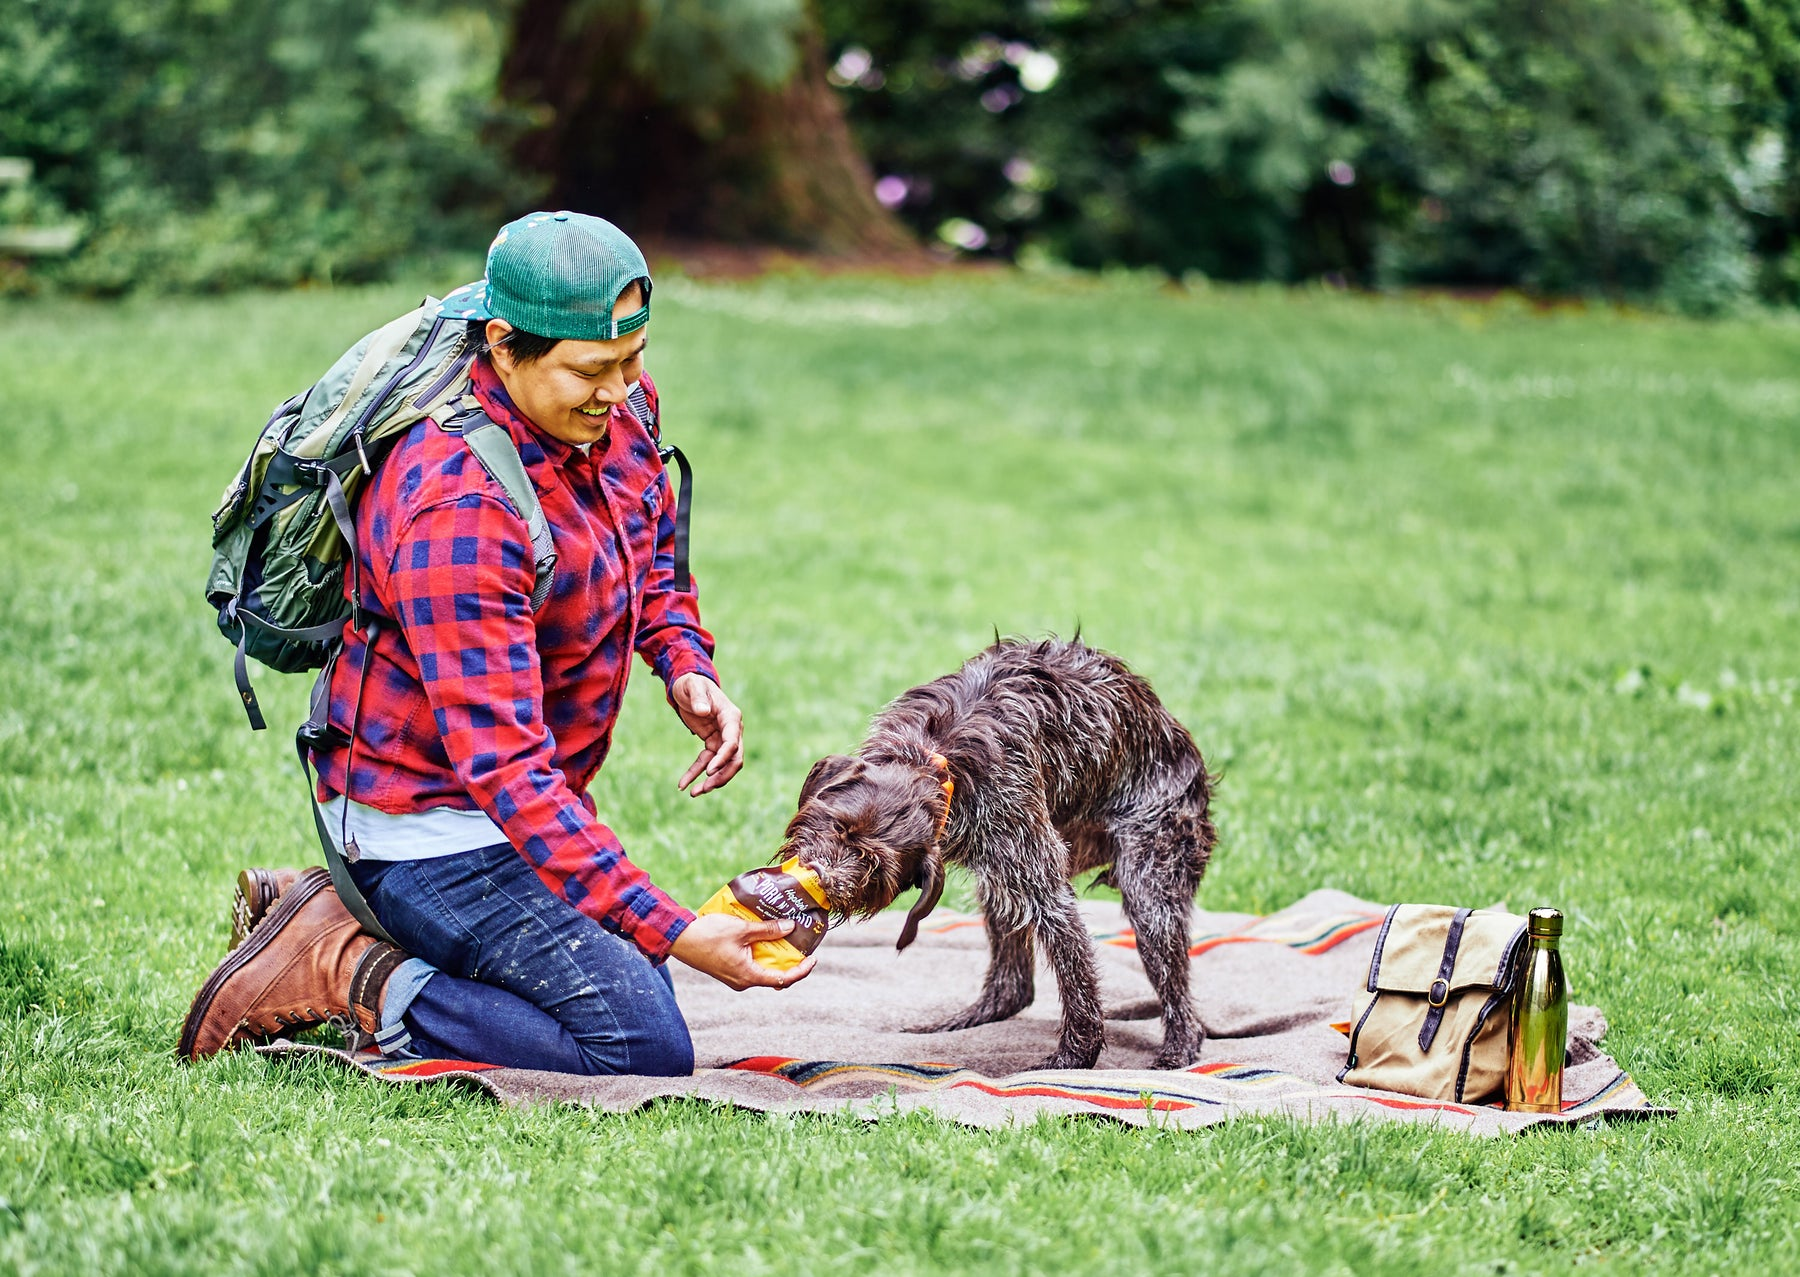 portland pet food company dog eating meal picnic